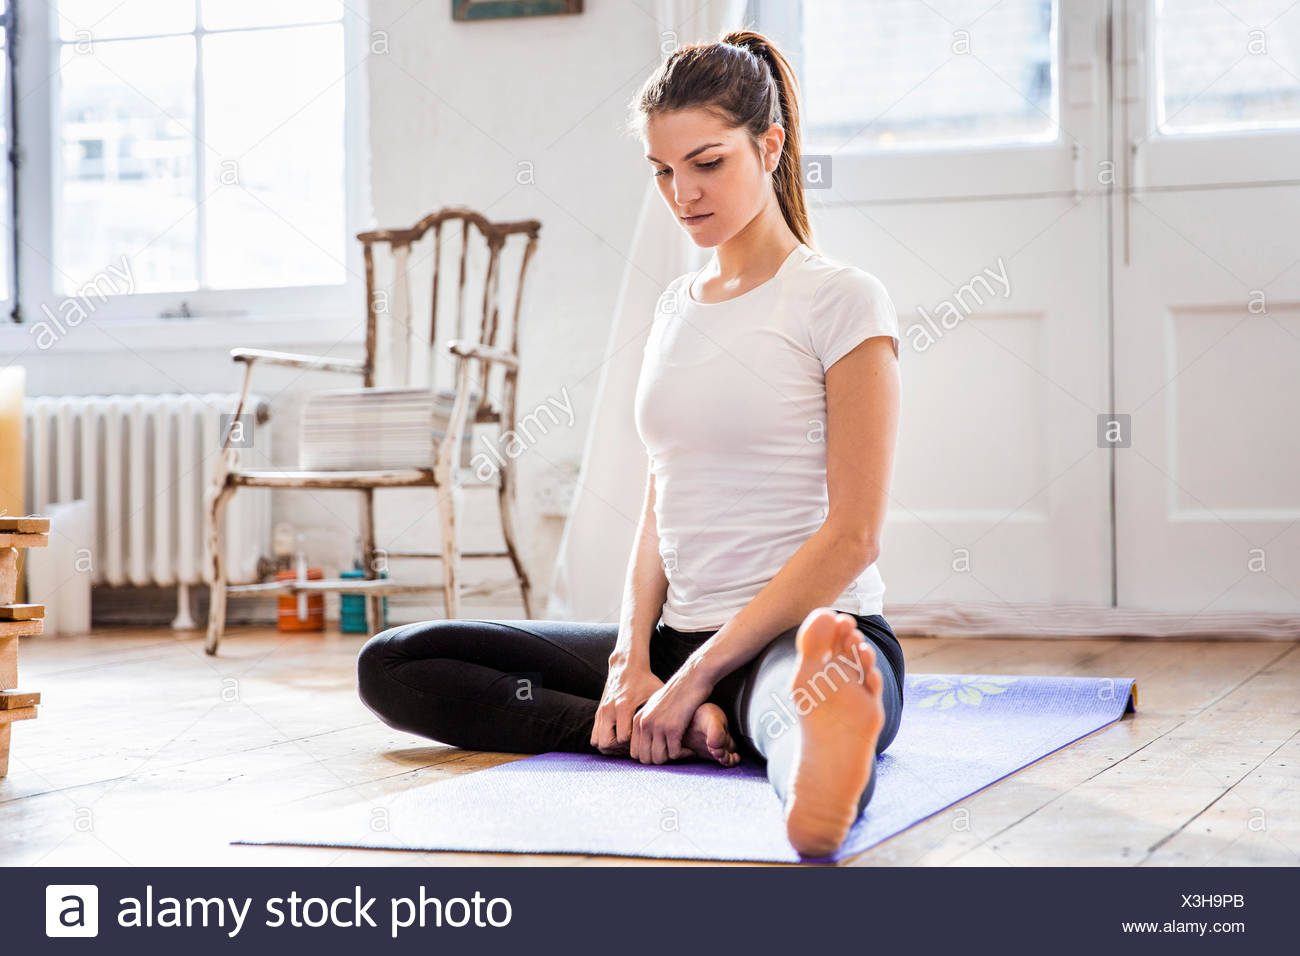 Young Woman Wearing Leggings Sitting Stock Photos & Young ...